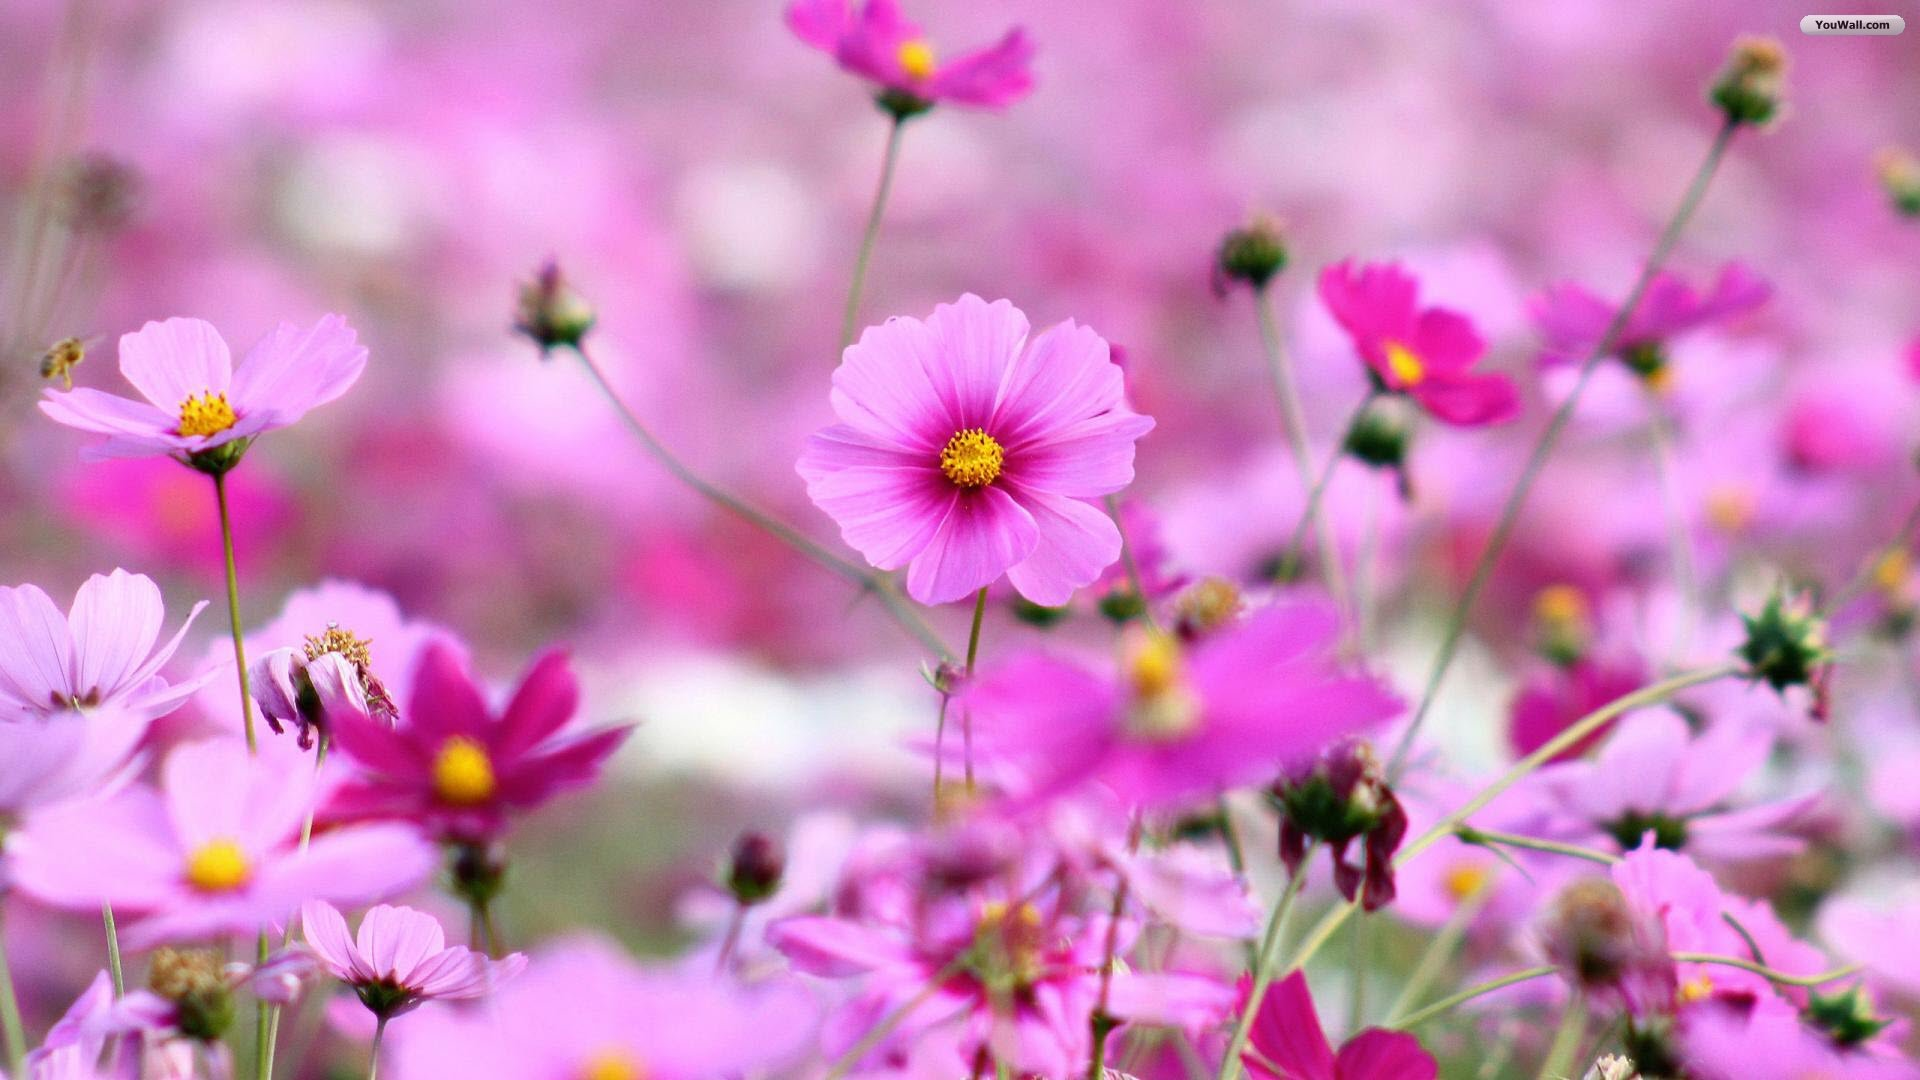 Good flower s wallpaper 1920x1080 23129 good flower wallpapers voltagebd Image collections